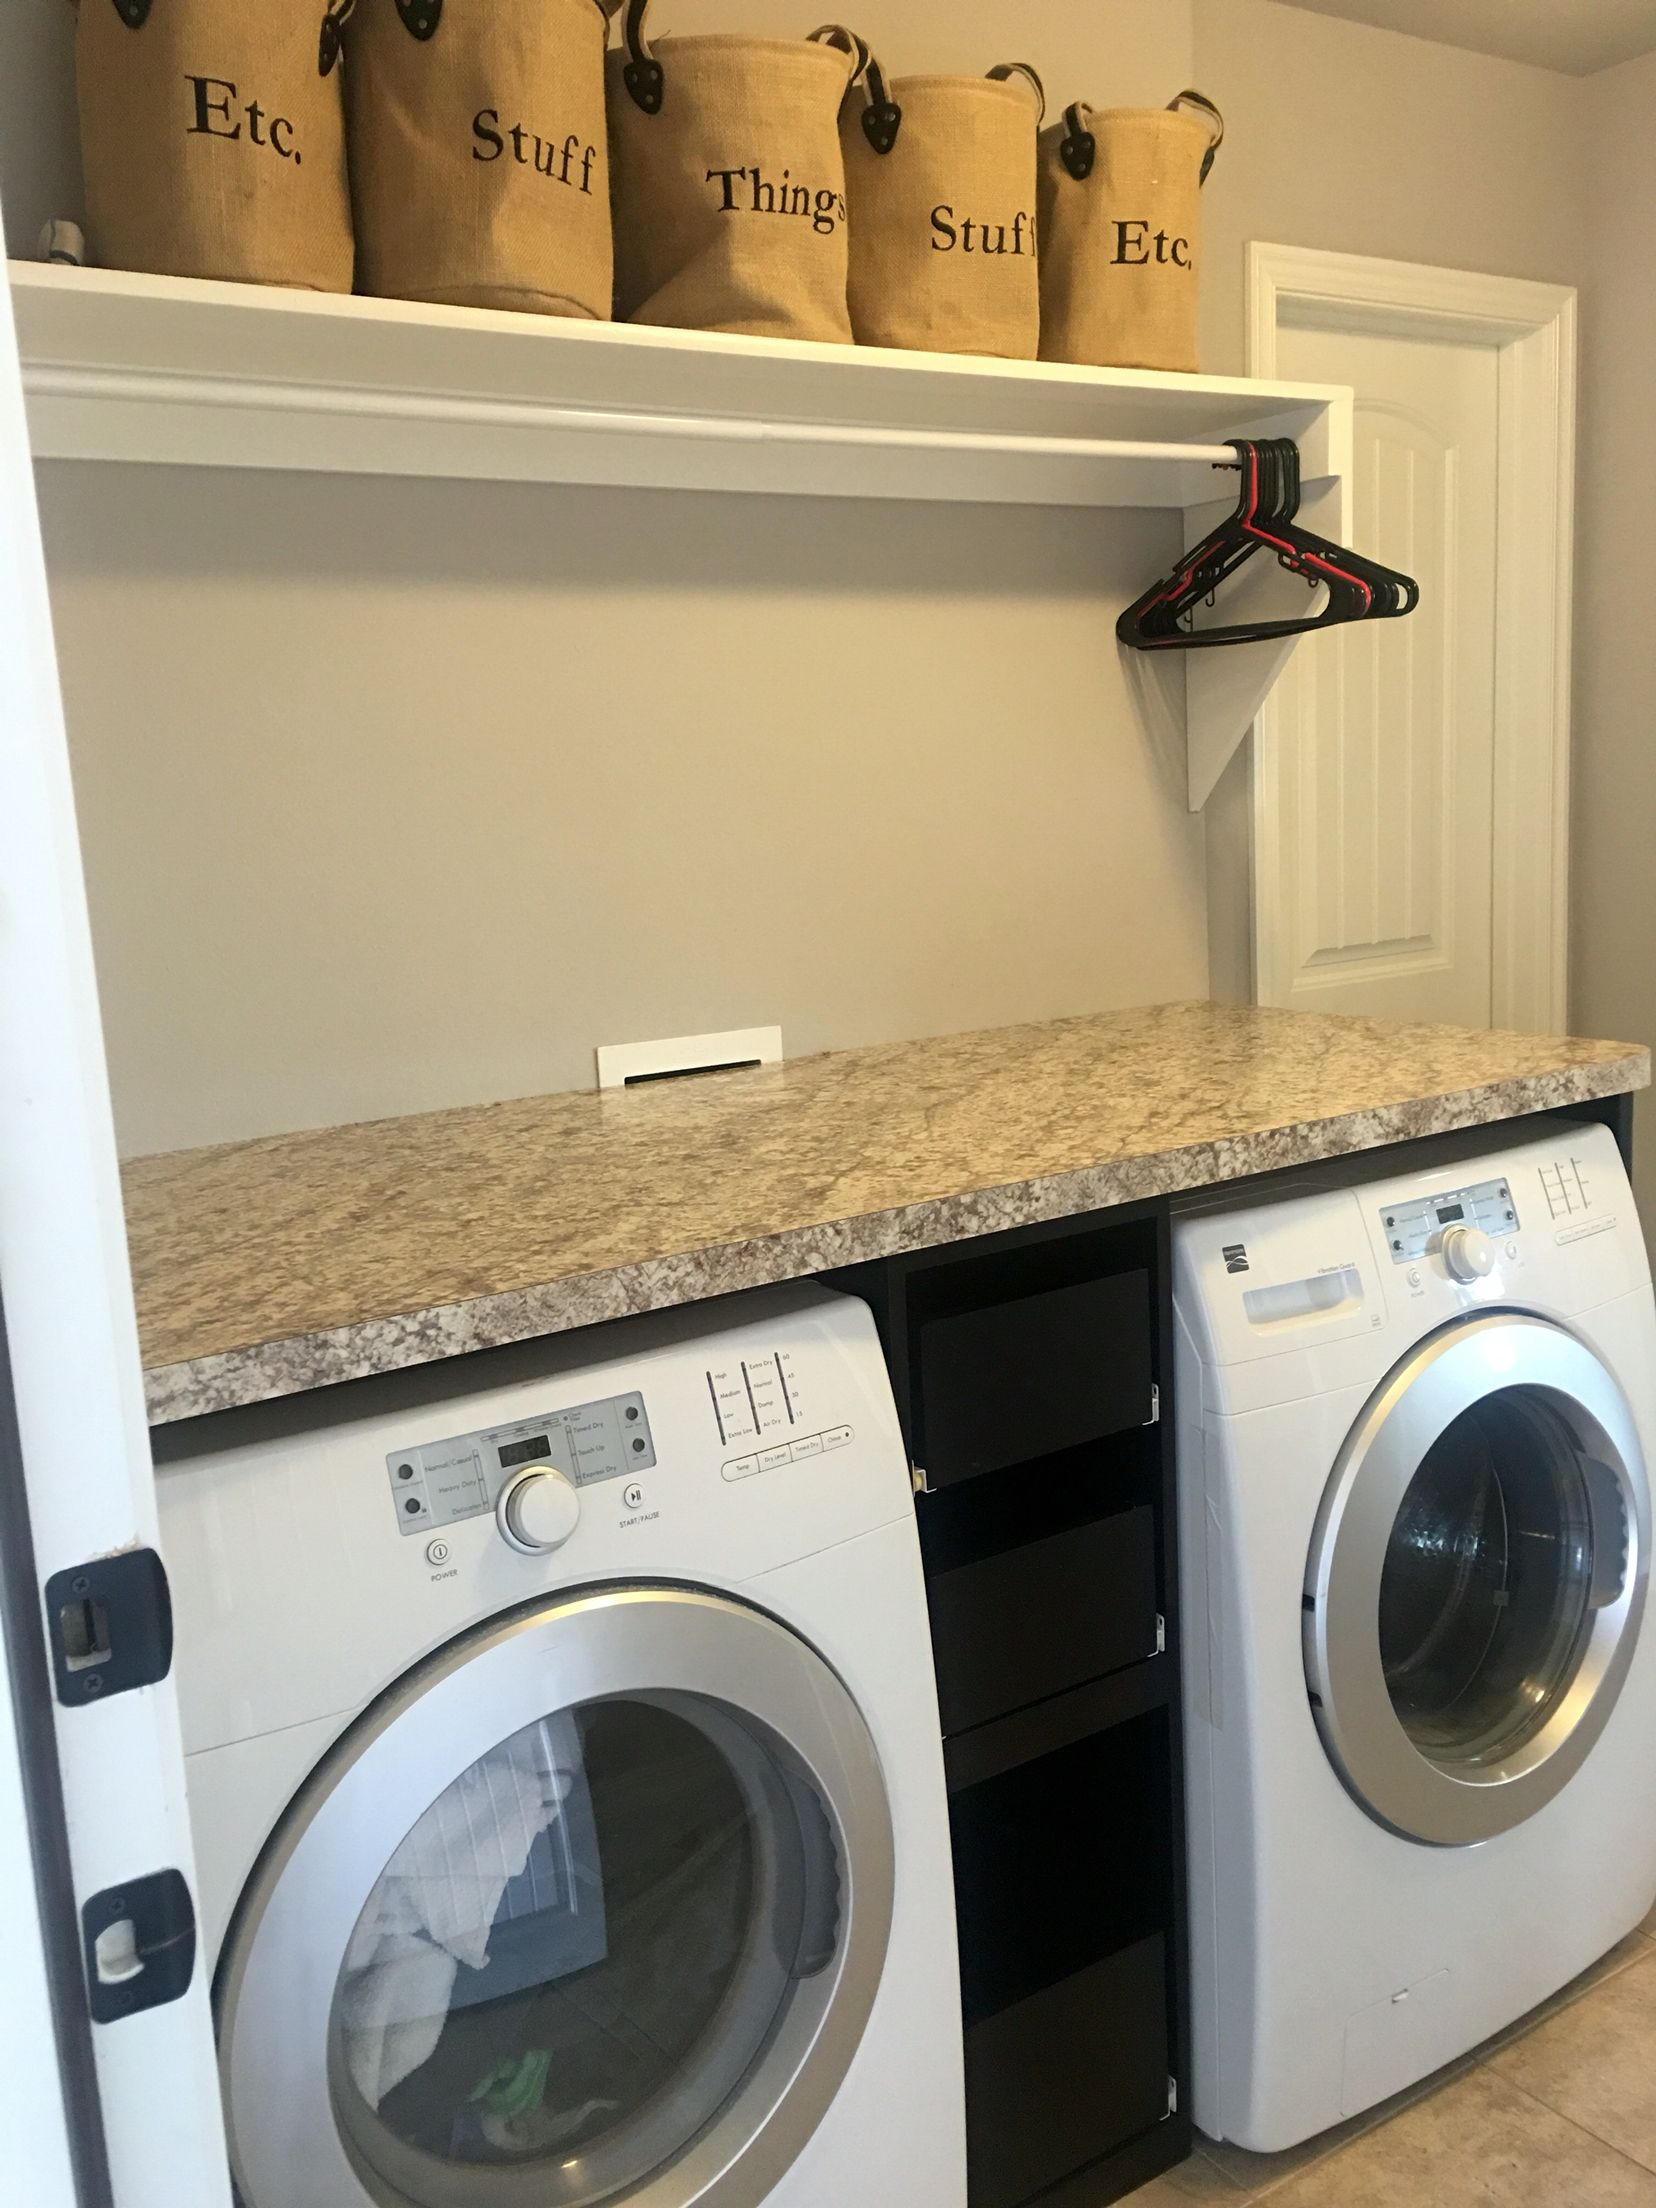 Superbe Laundry Room With: Counter Over The Washer Dryer, Slide Out Drawers In  Between.